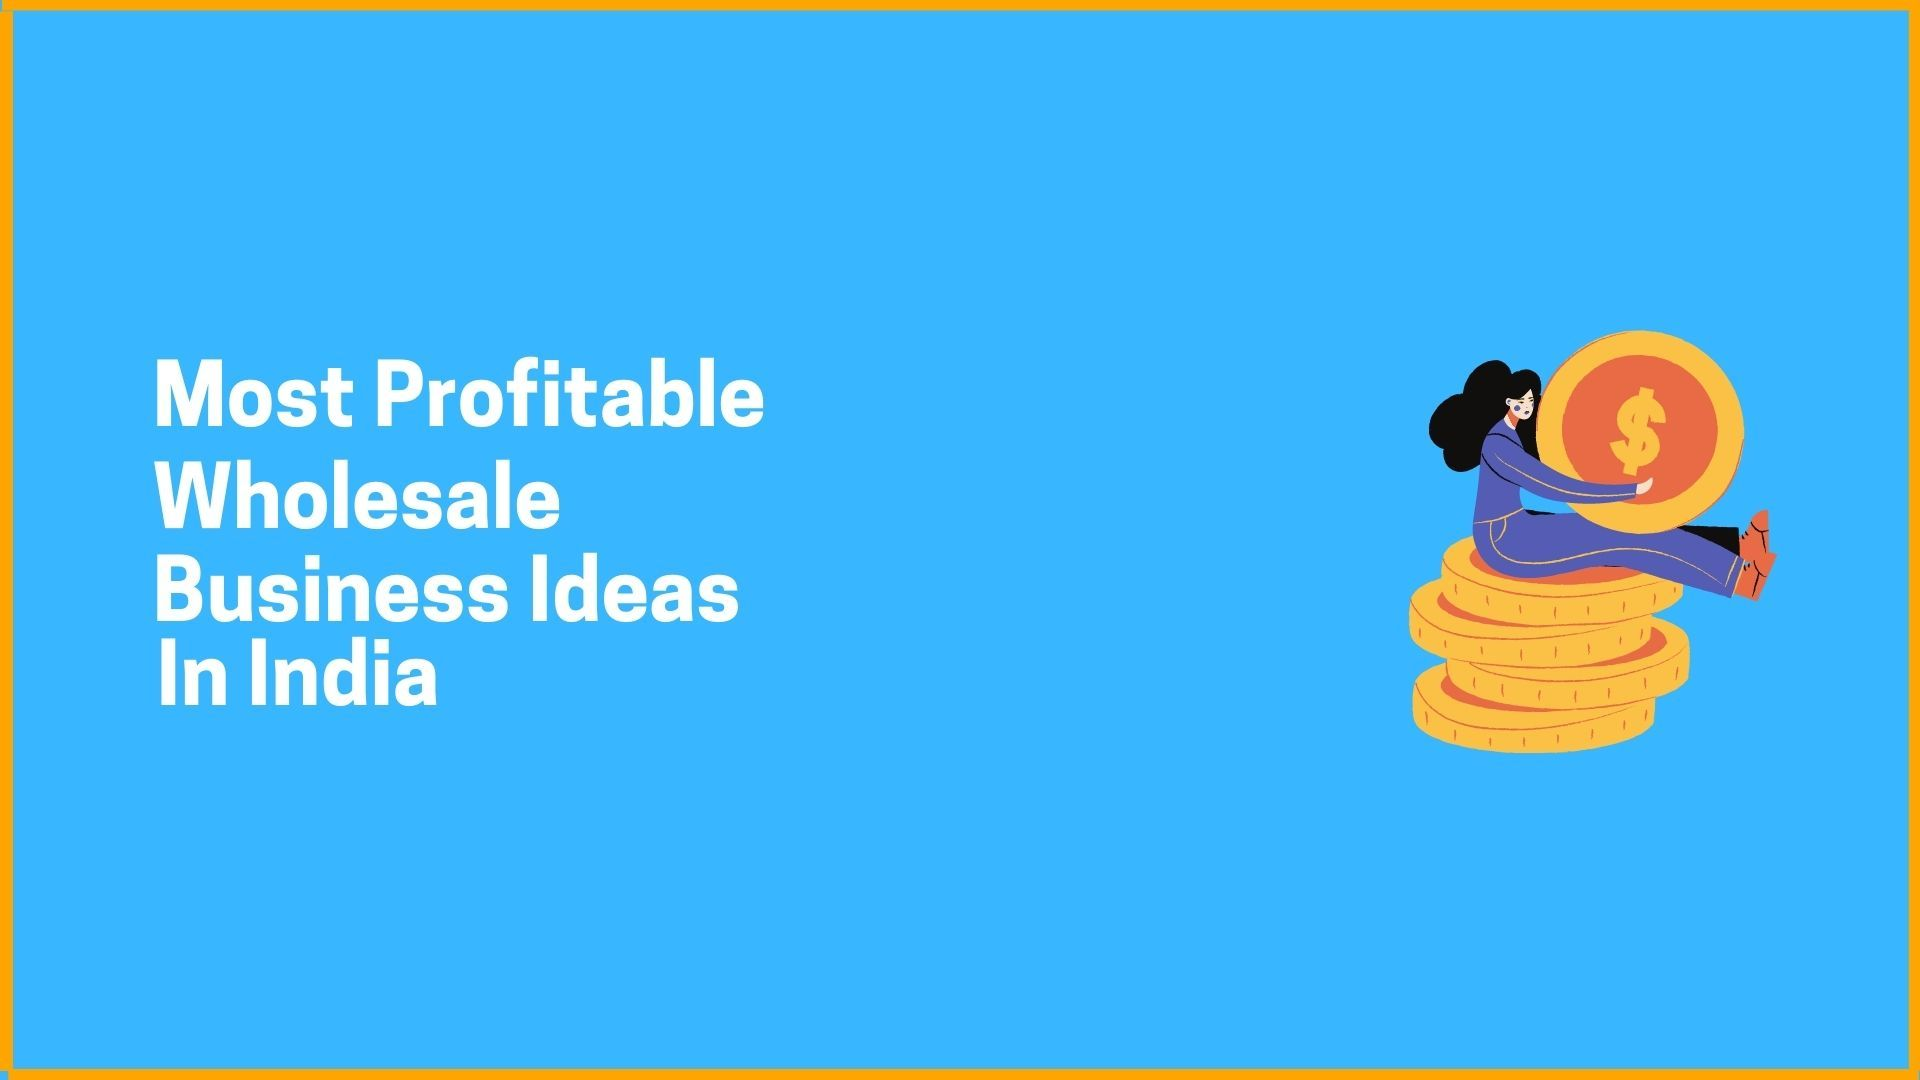 Most Profitable Wholesale Business Ideas In India